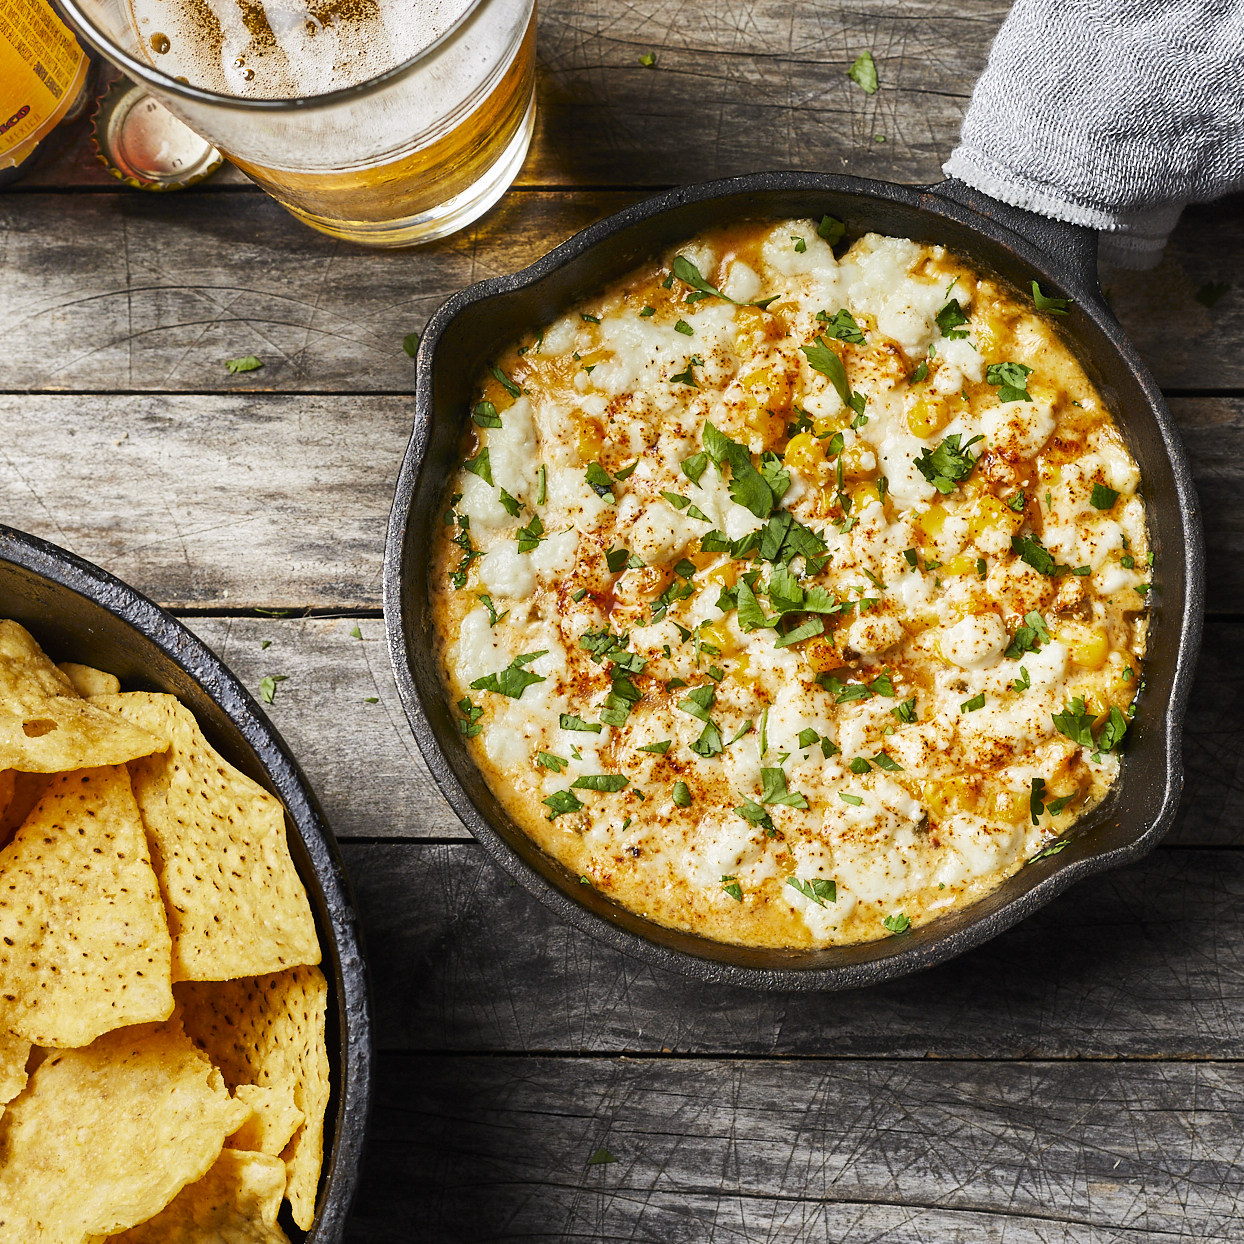 Serve this Mexican street corn dip at your next summer party. Creamy melted cheese brings sweet corn and spicy jalapeño together with a nice pop of brightness from lime juice and cilantro. This creamy and satisfying dish can be served with tortilla chips and veggies for dipping. Source: EatingWell.com, May 2020